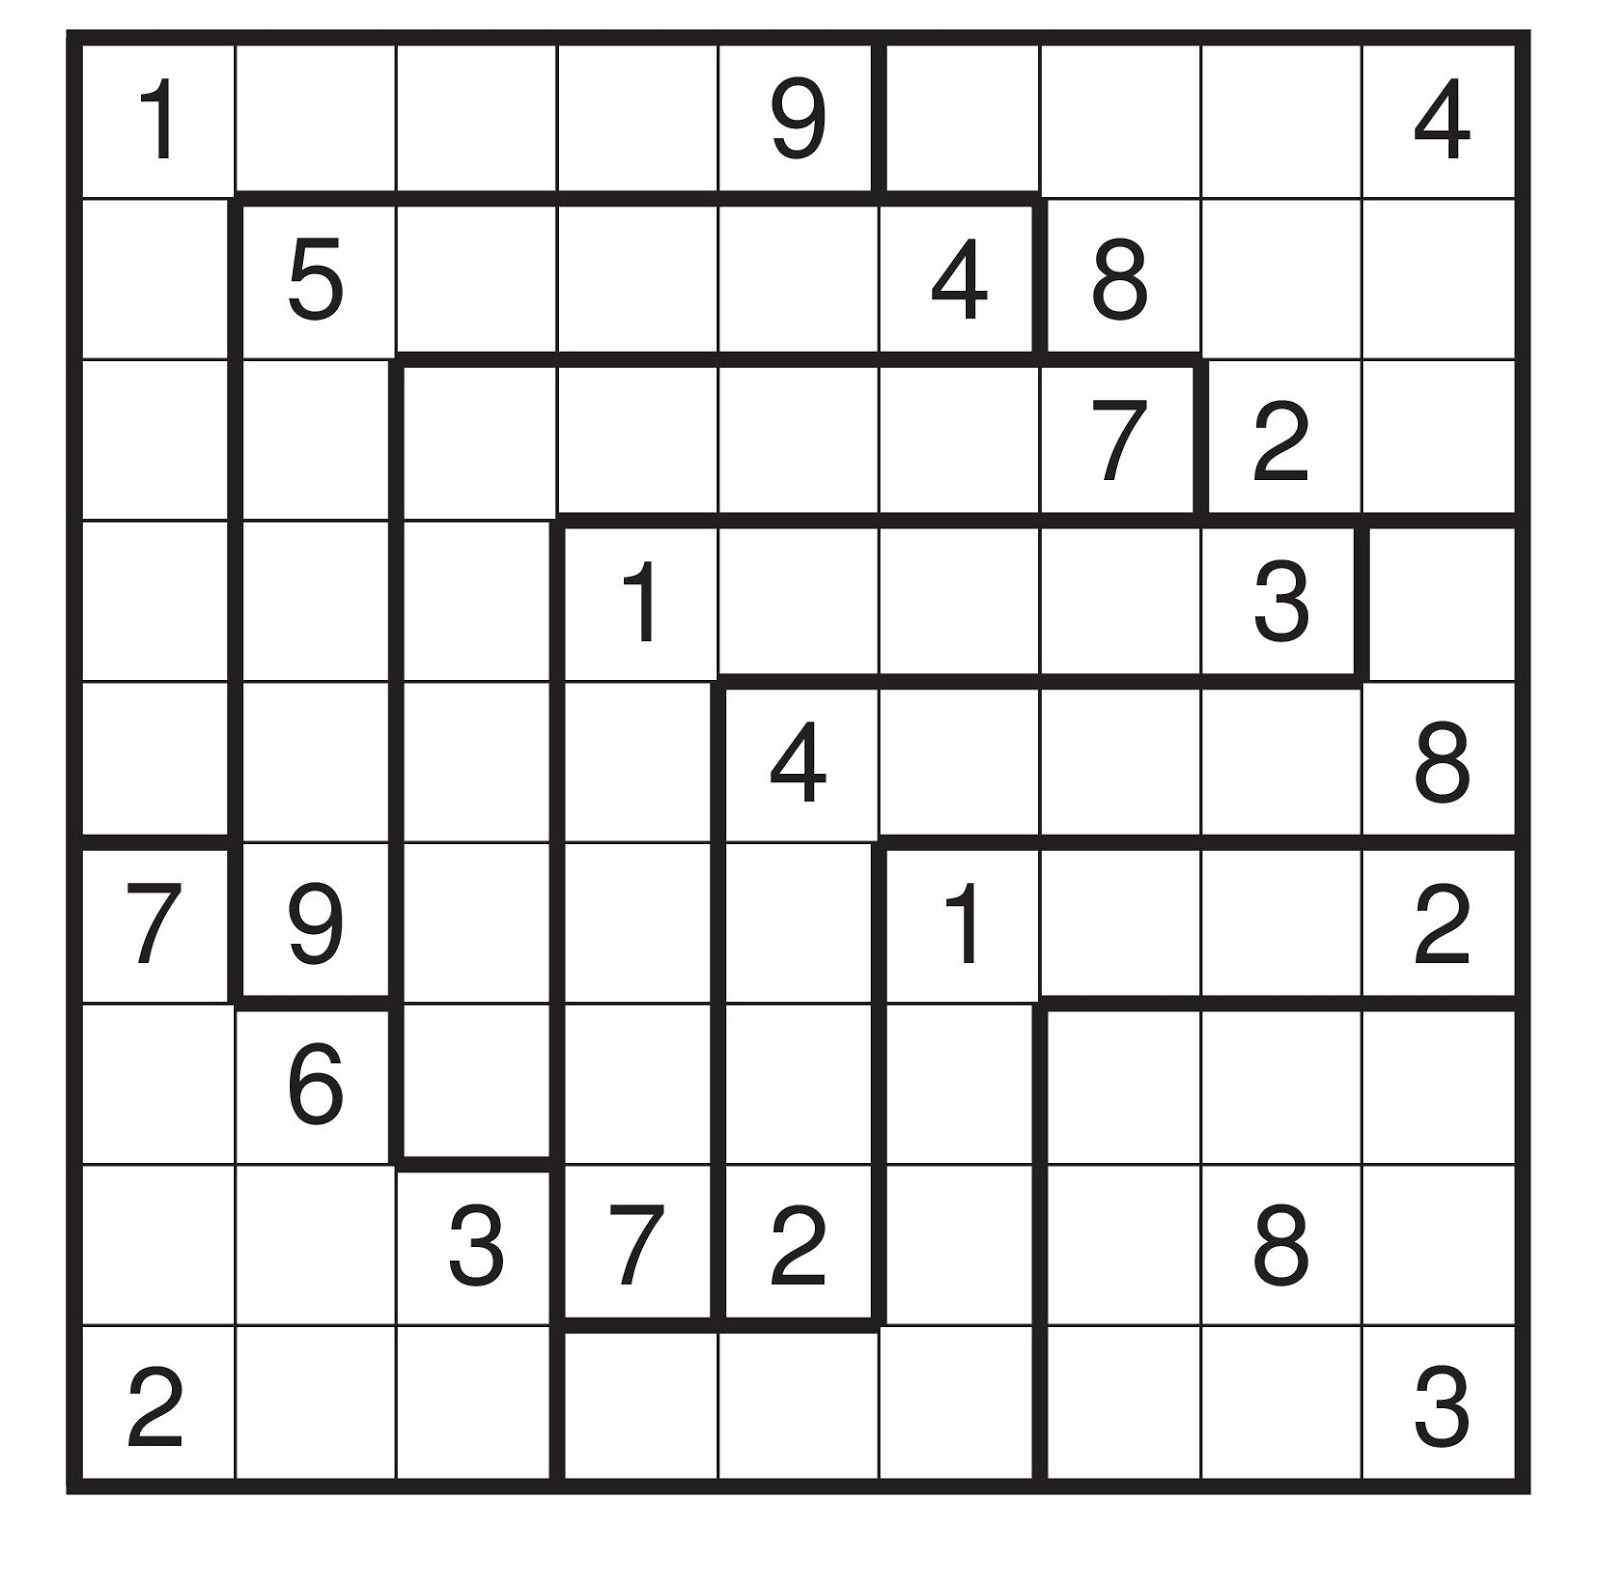 Impeccable image in irregular sudoku printable